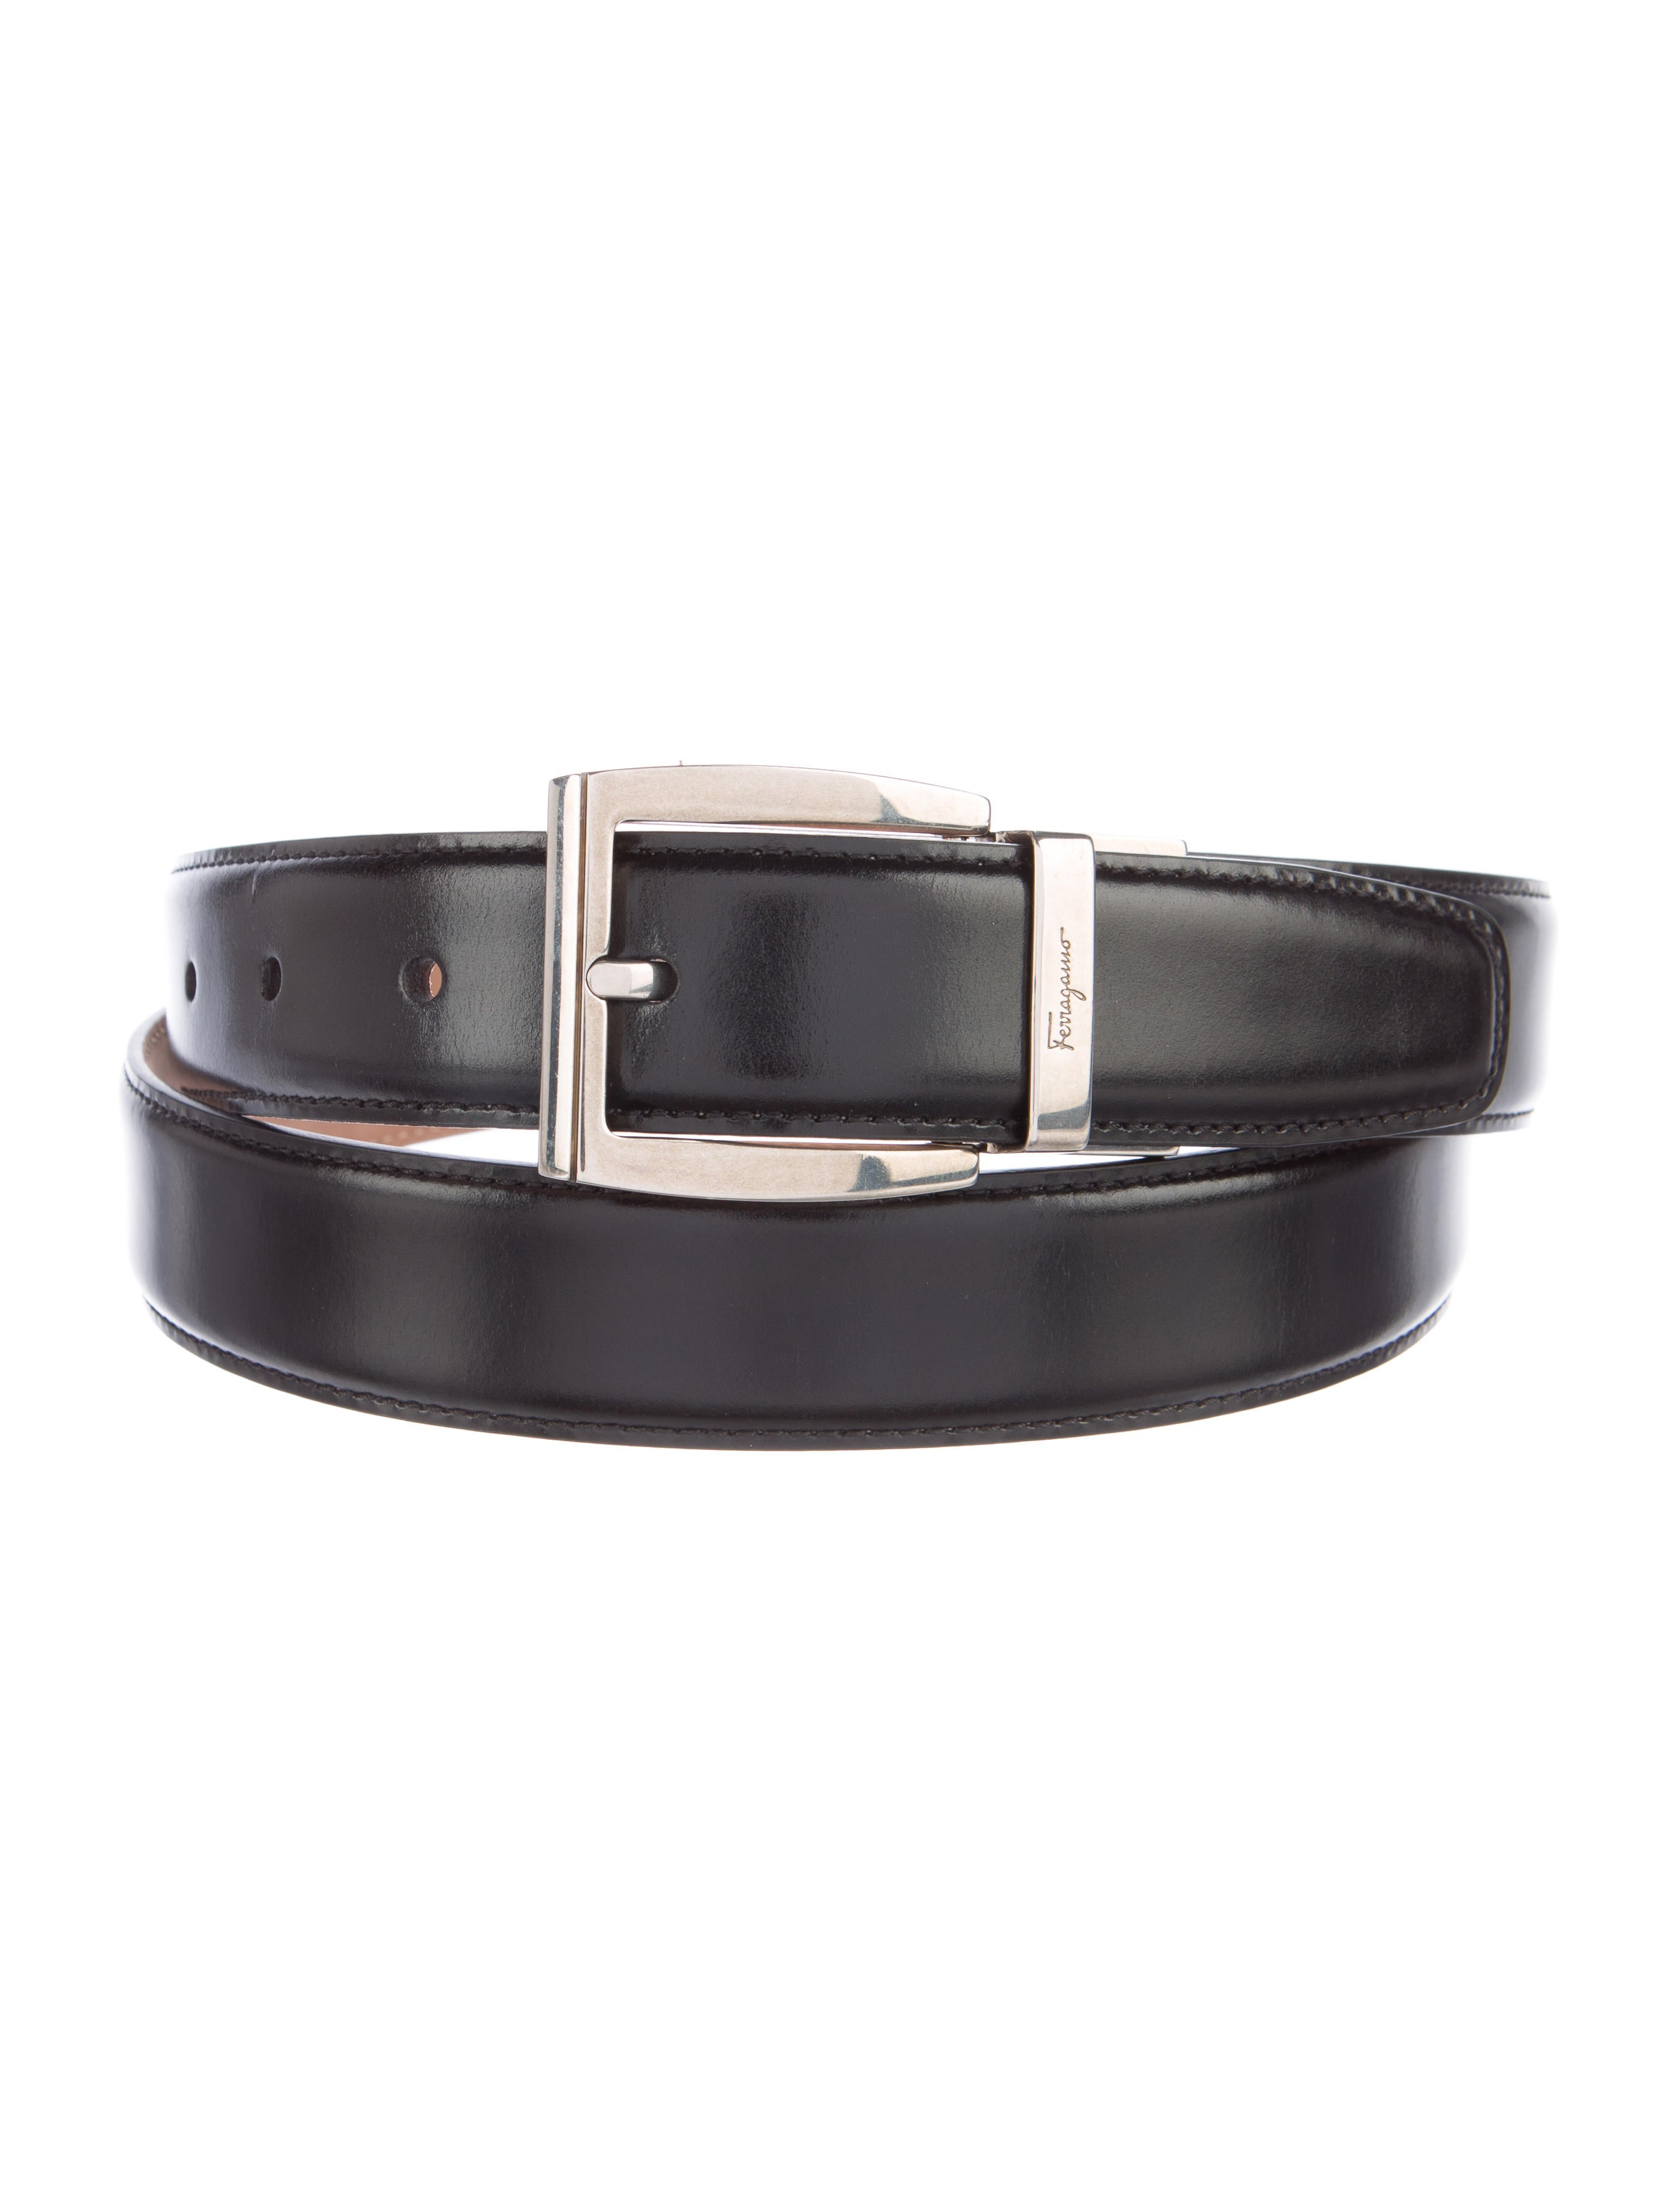 Salvatore Ferragamo Leather Dress Belt - Accessories - SAL45943 - The ...